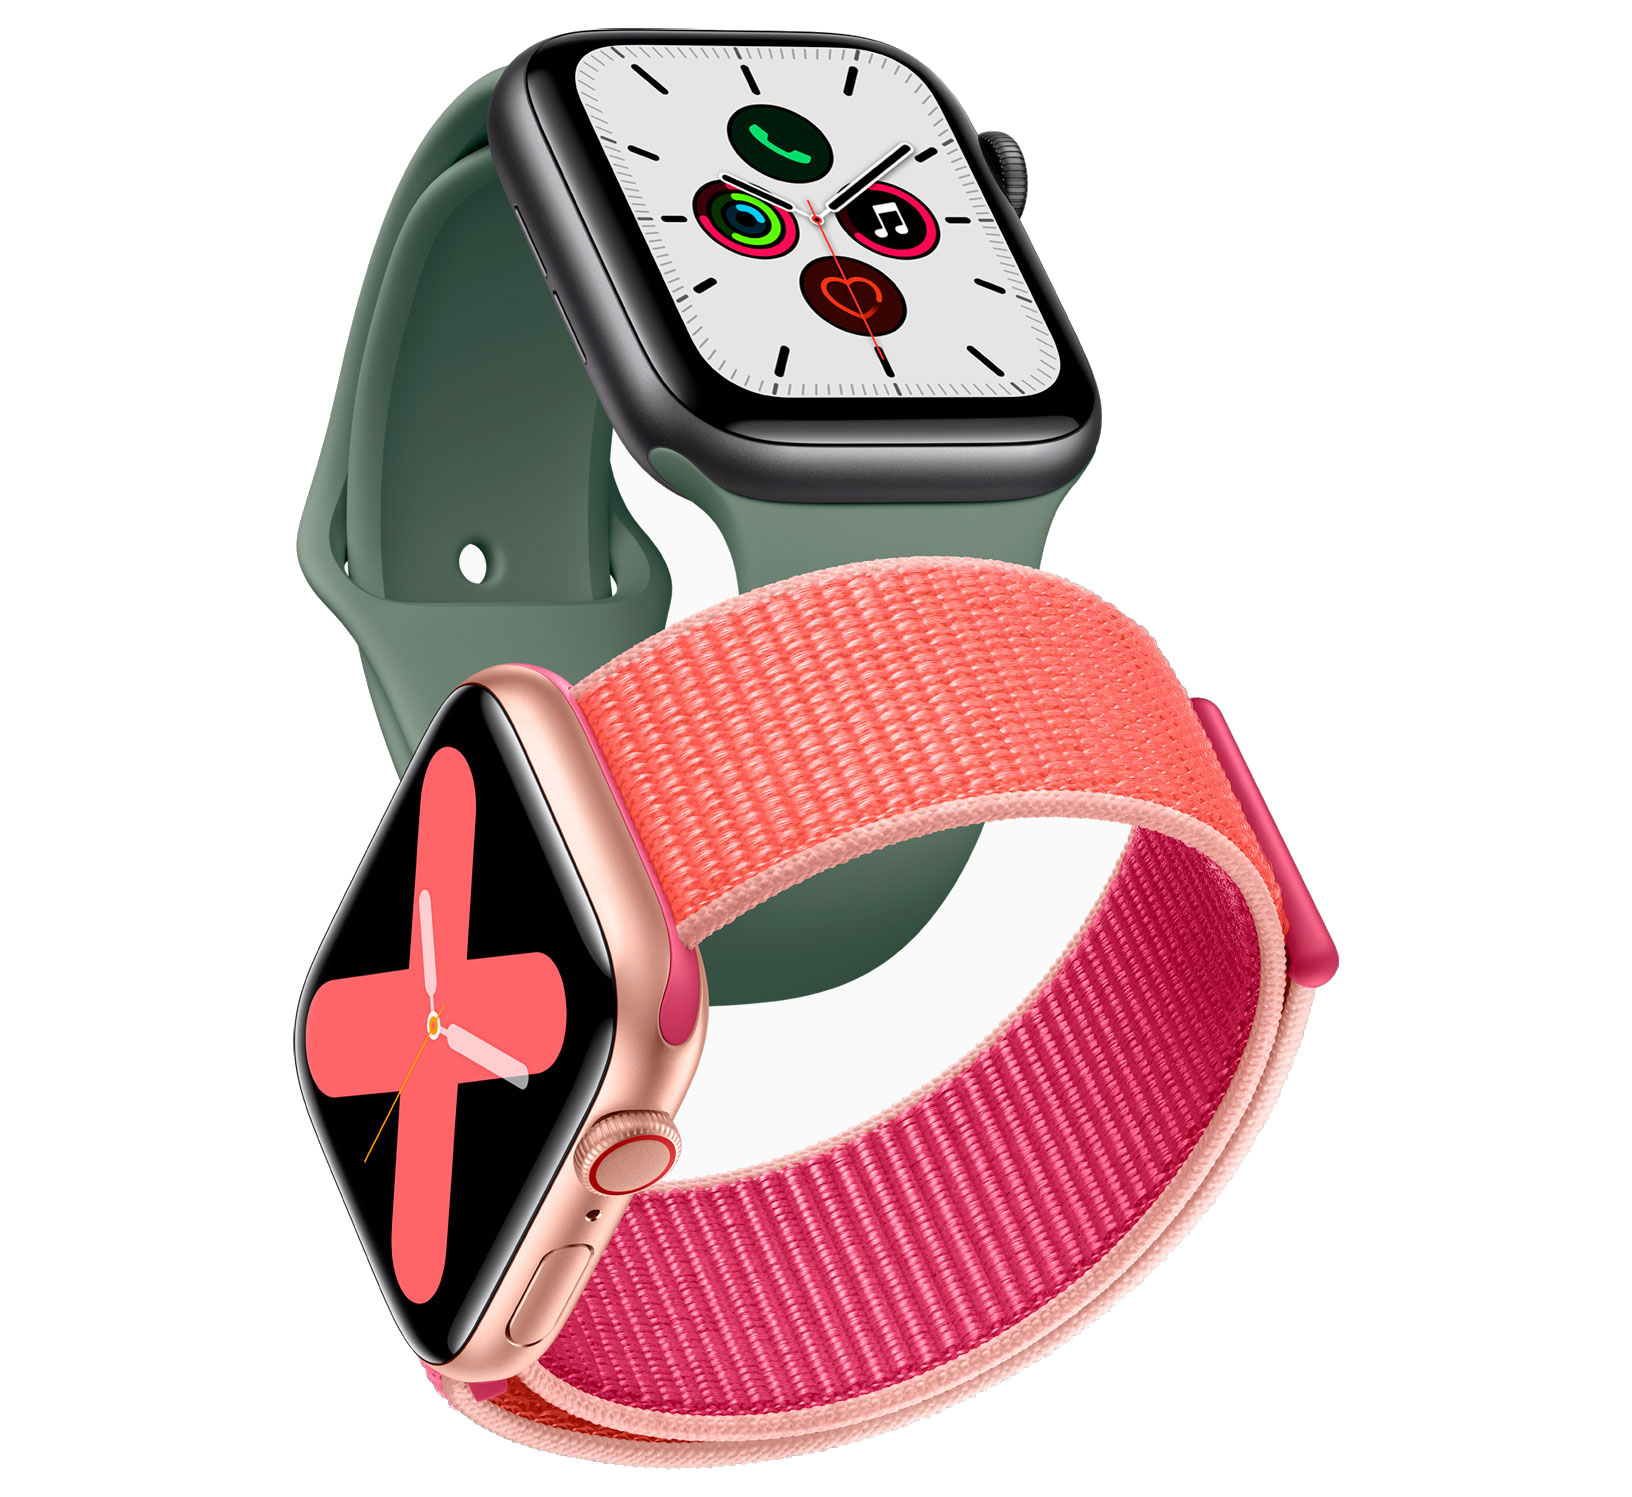 https://www.macfreak.nl/modules/news/images/zArt.AppleWatch_5-gold-aluminum-case-pomegranate-band-and-space-gray-aluminum-case-pine-green-band-091019.jpg